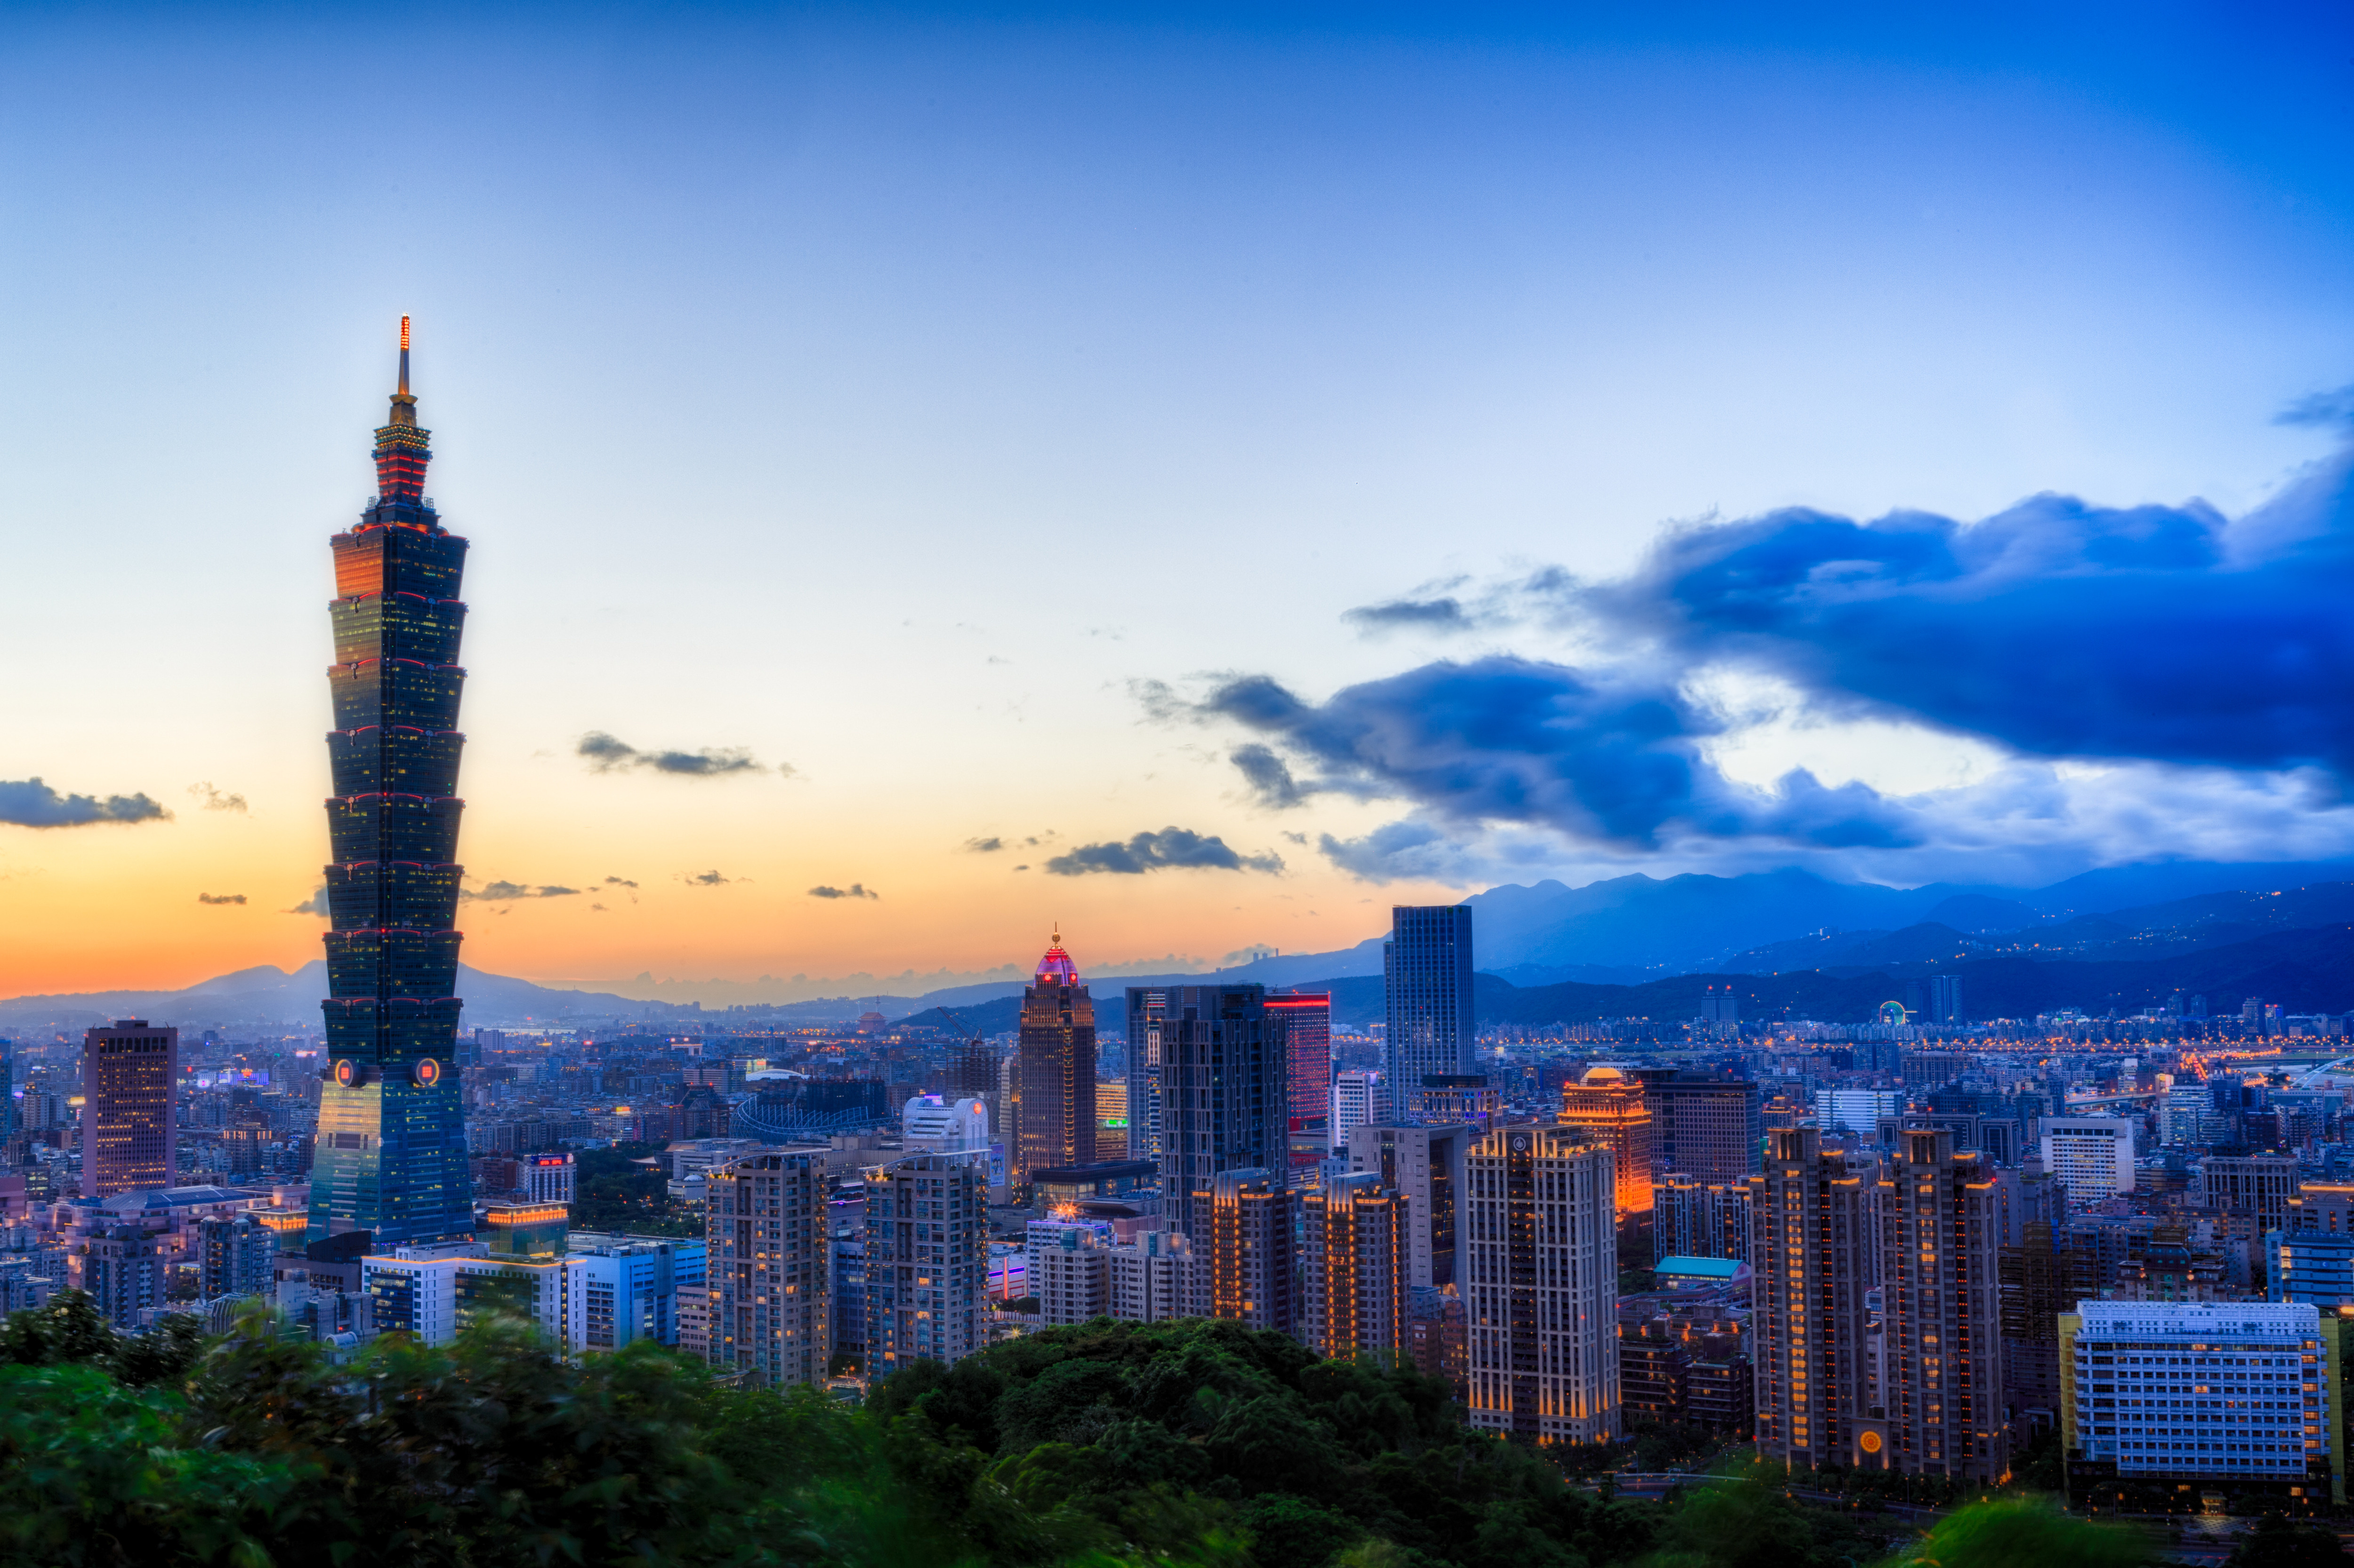 The Taipei city skyline at sunset the day before a typhoon